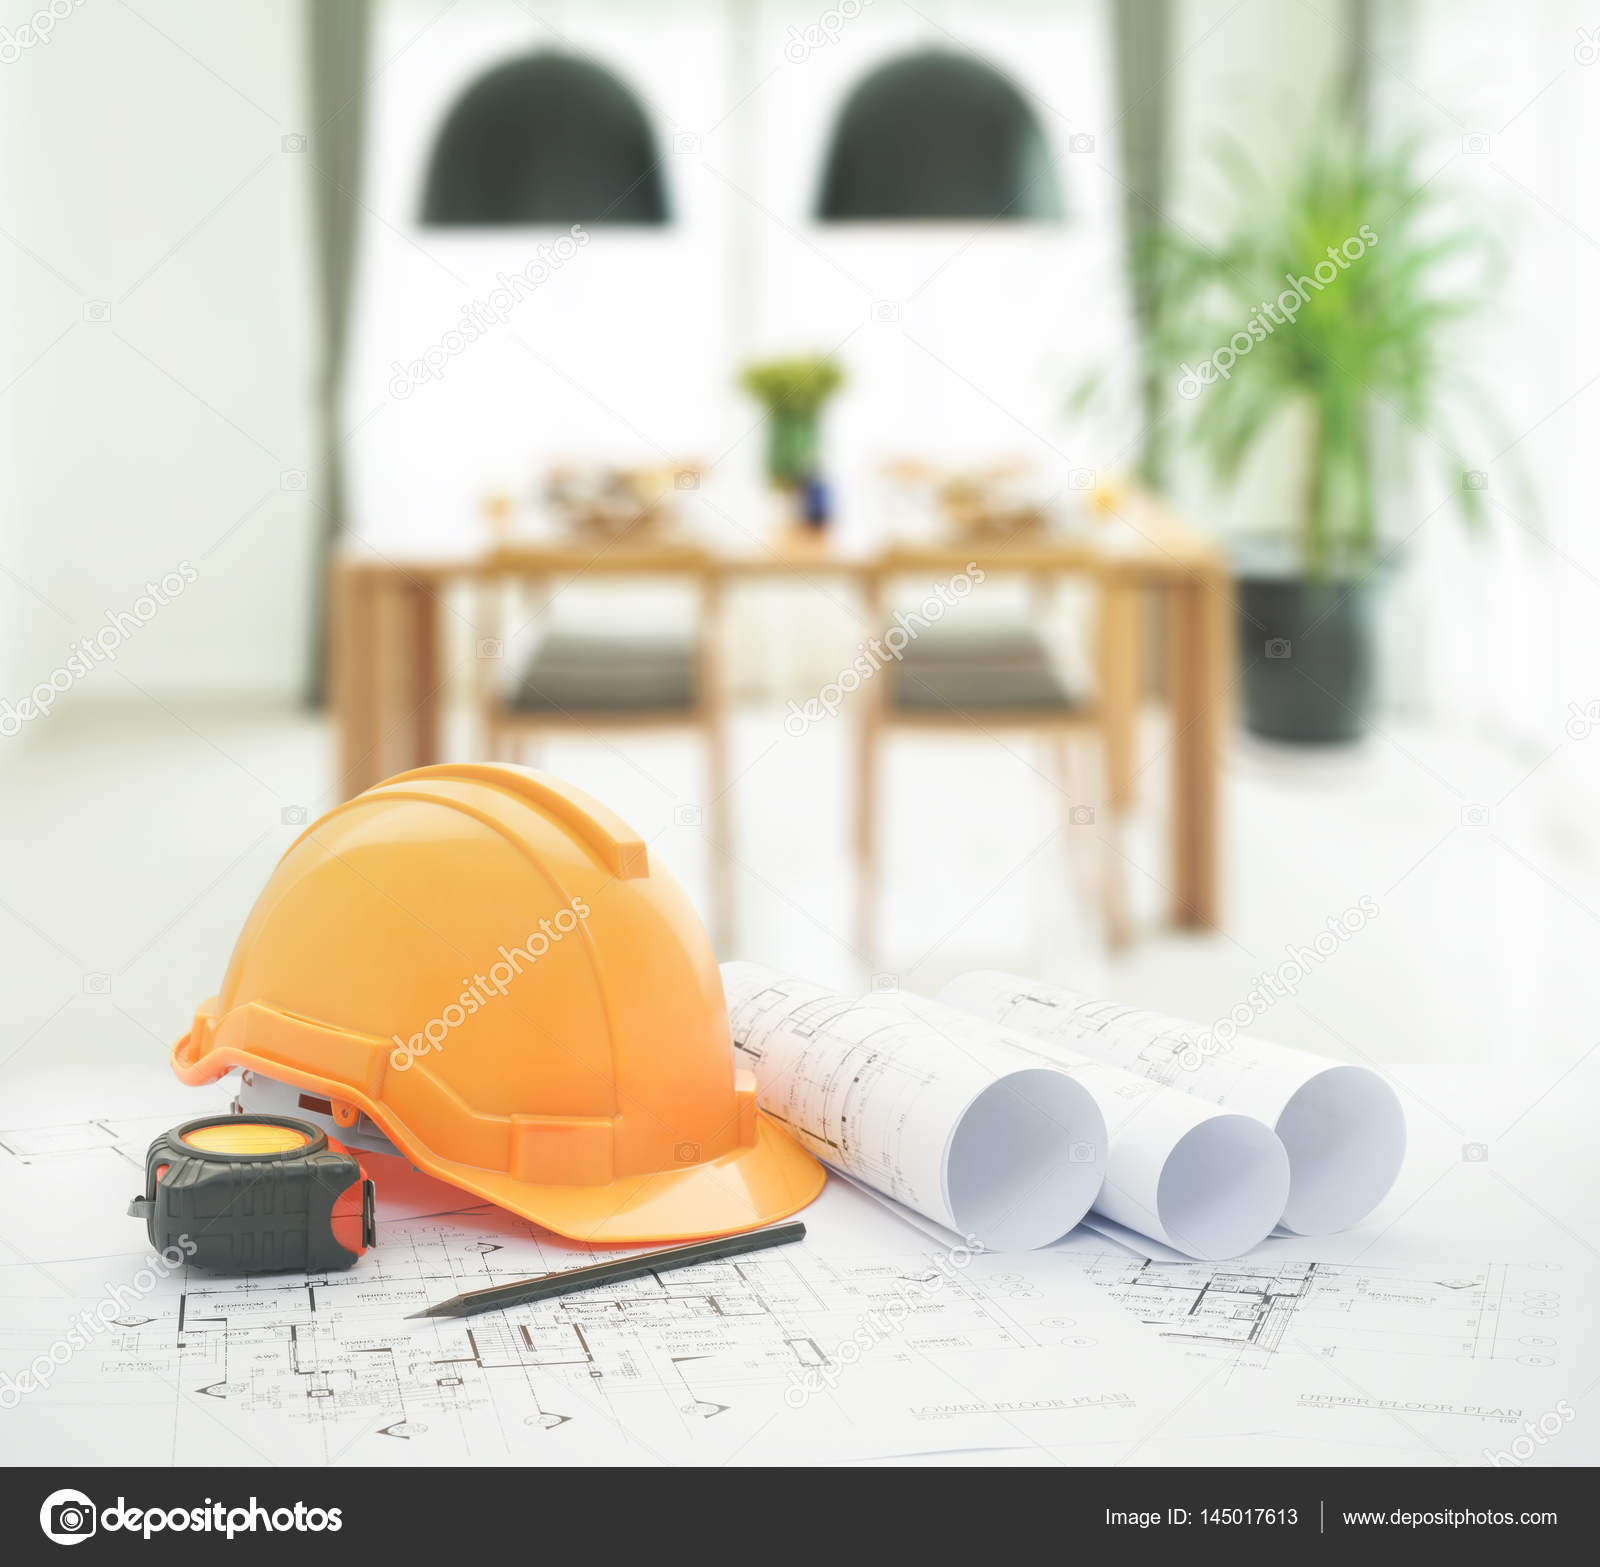 Architectural blueprint with safety helmet and tools over dining architectural blueprint with safety helmet and tools over dining table and comfortable chairs in modern home photo by worldwidestock malvernweather Gallery